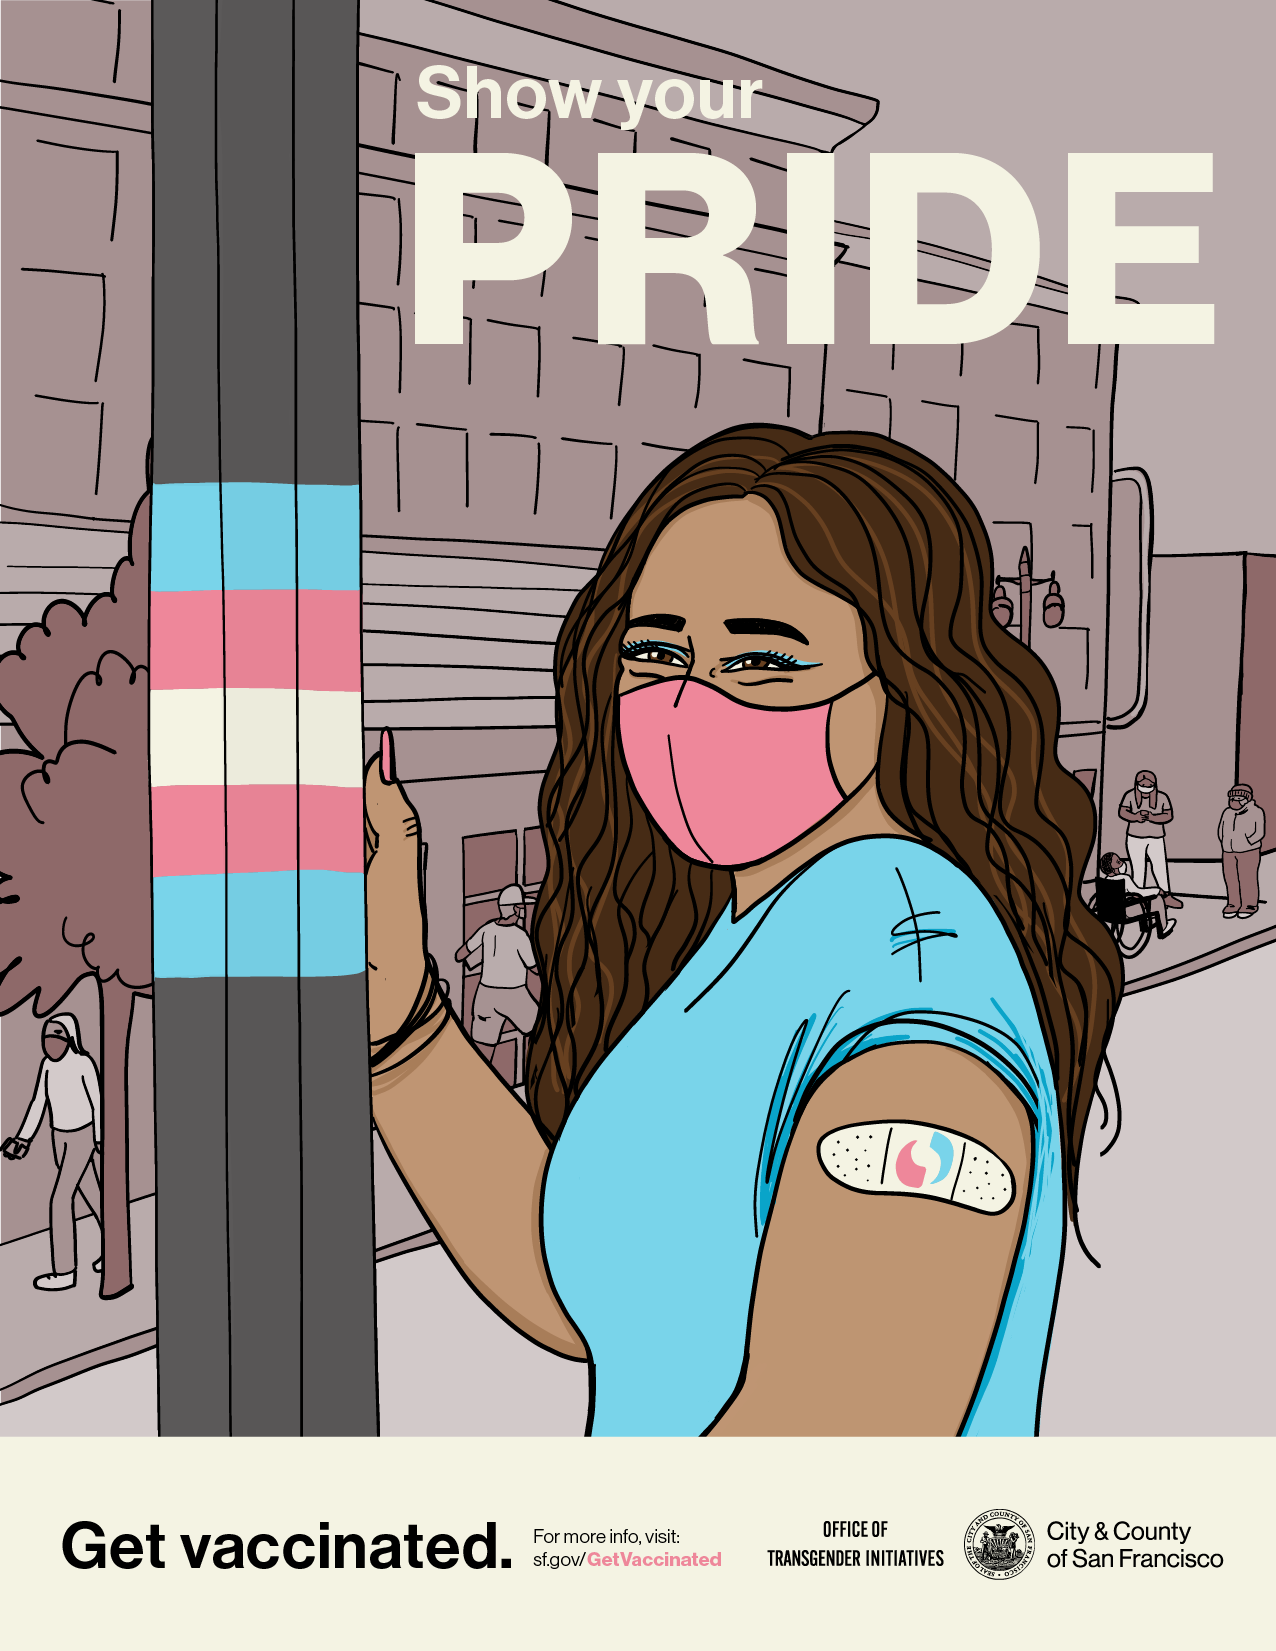 Drawing of a person with long brown hair wearing a mask and bandaid on their arm, and standing next to a pole in the Trans District with the trans pride flag colors.